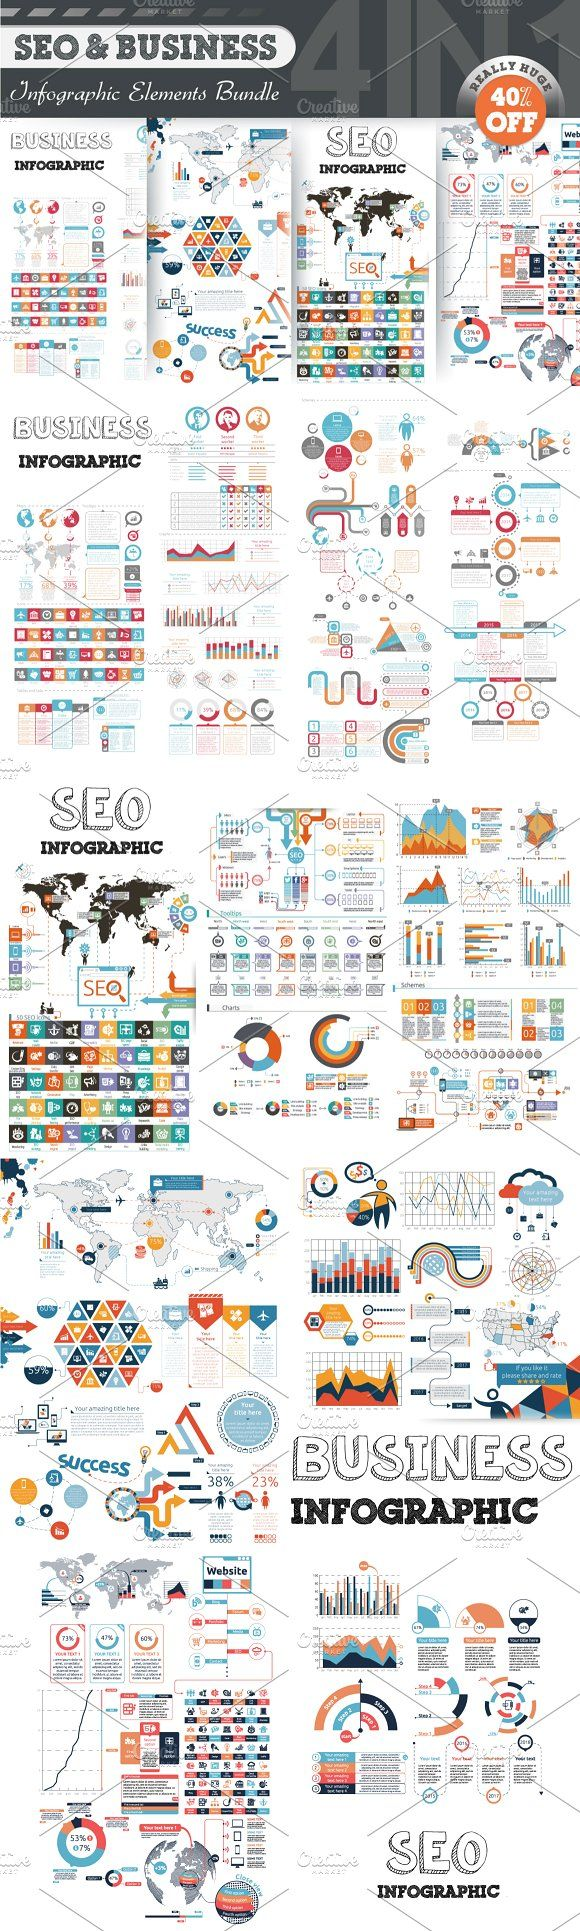 @newkoko2020 40% OFF Infographic Bundle by Infographic Paradise on @creativemarket #infographic #infographics #bundle #design #template #megabundle #bigbundle #presentation #vector #business #layout #creative #graph #information #visualization